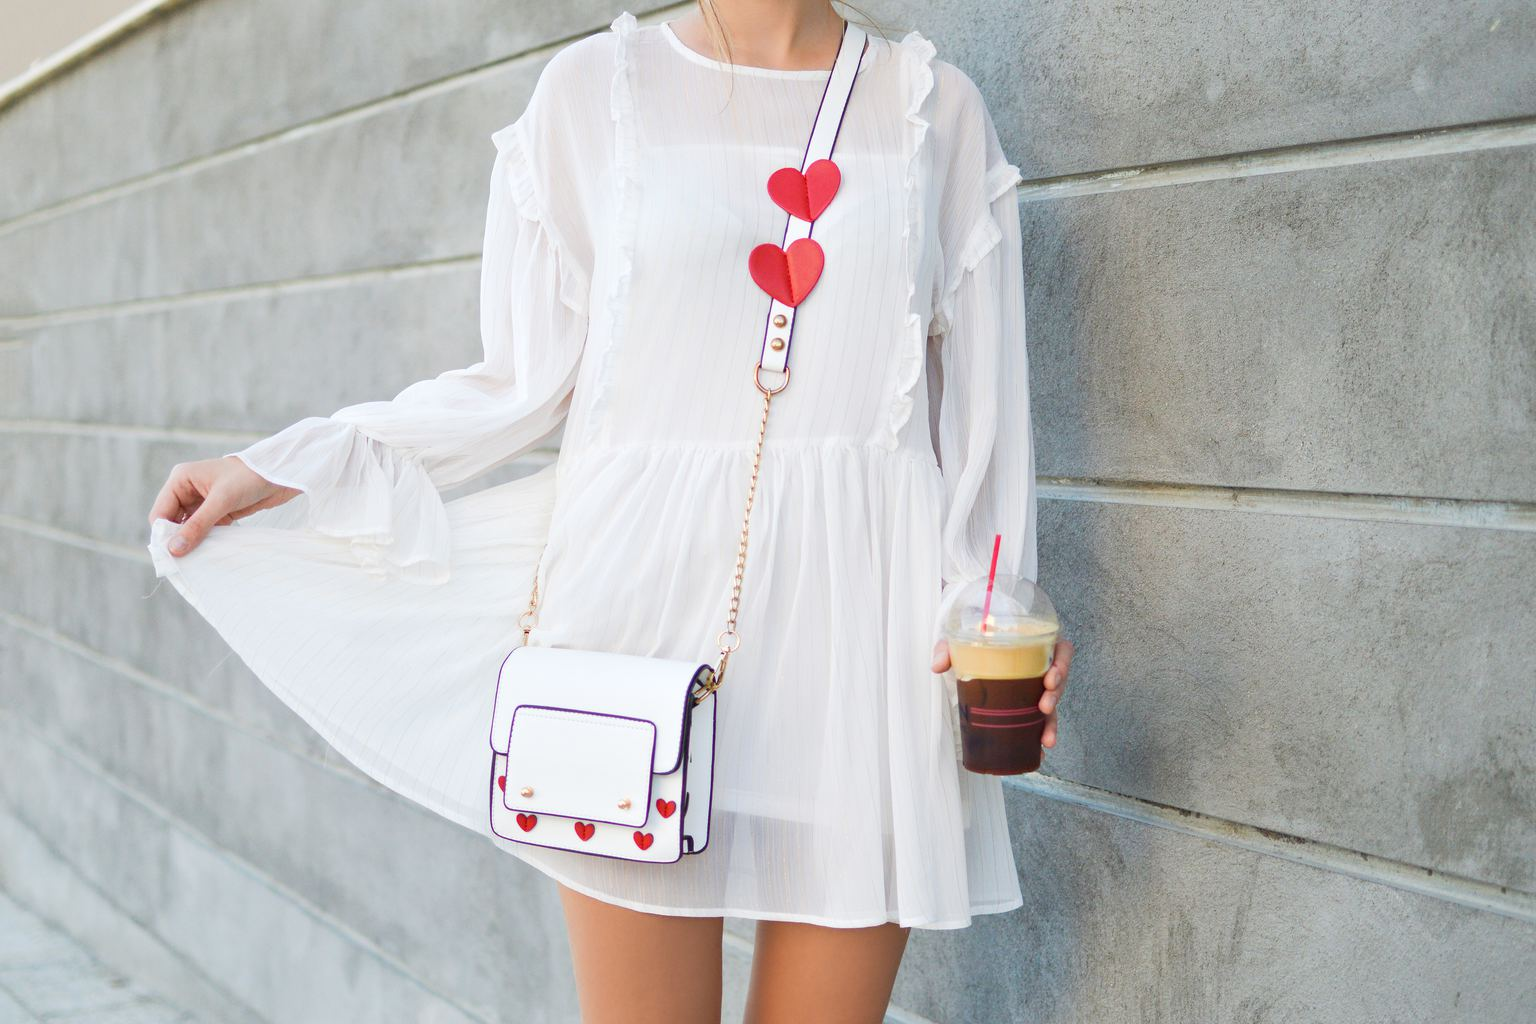 Girl wearing crossbody bag with hearts